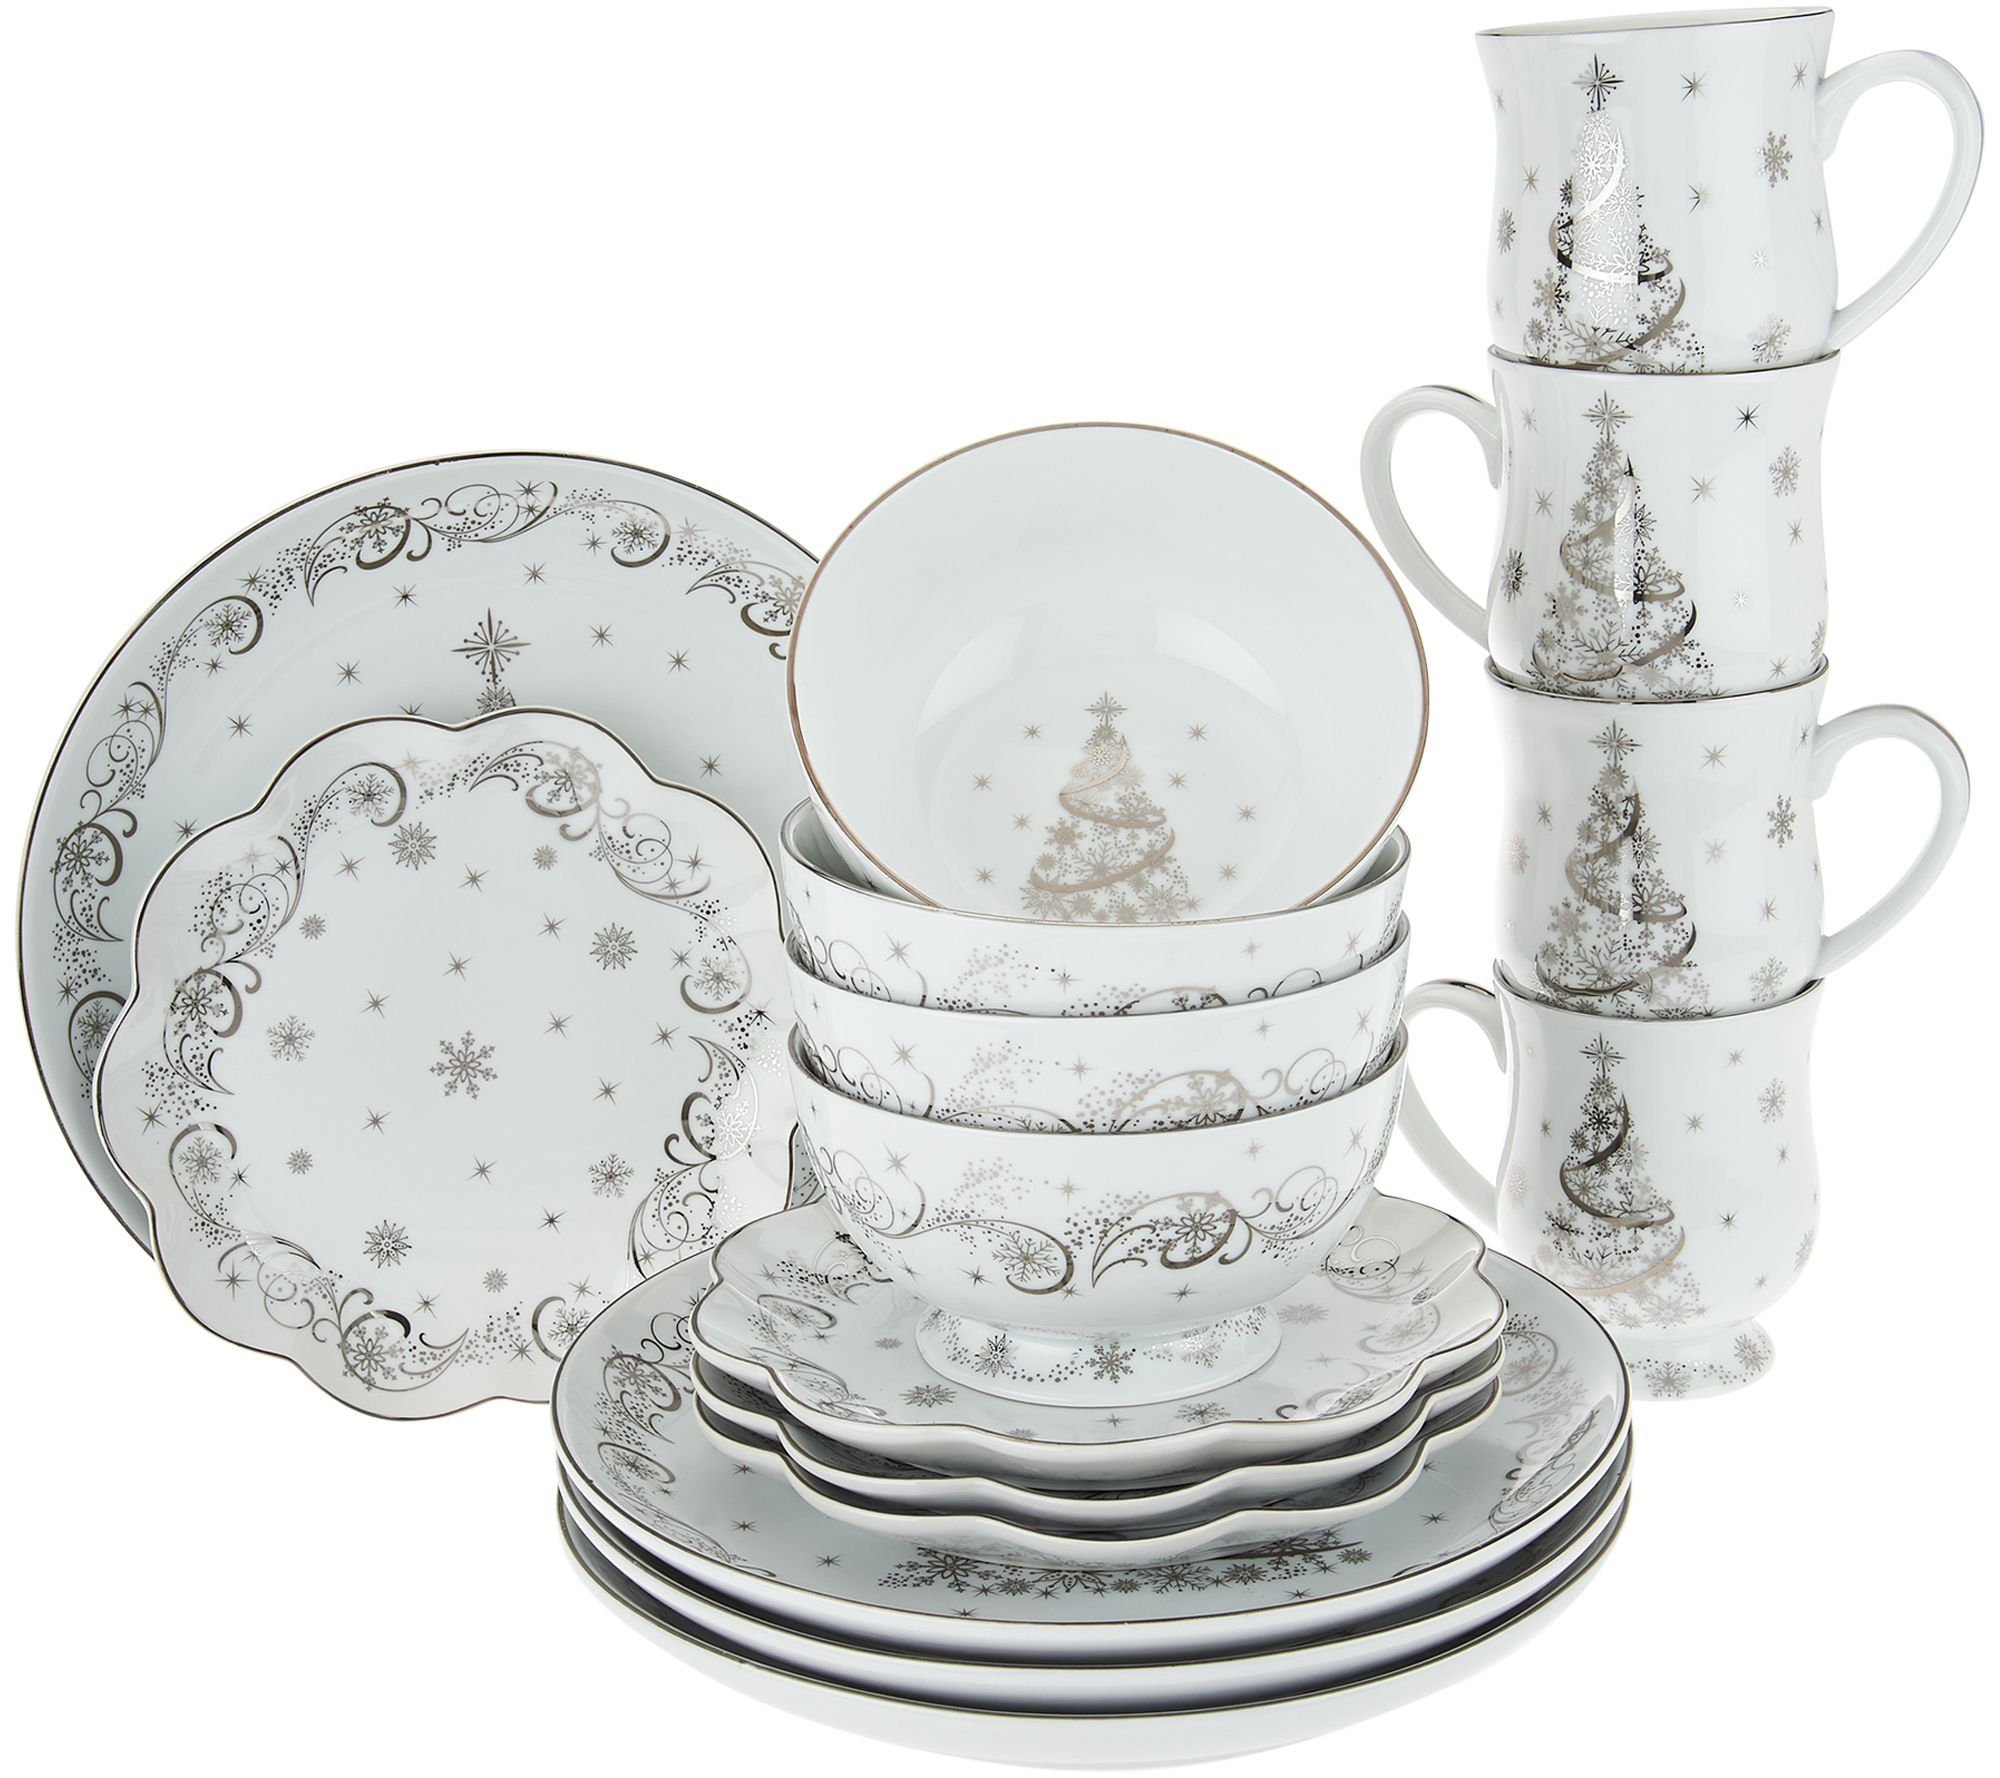 Quot As Is Quot Temp Tations 16 Pc Dinnerware Set Choice Winter